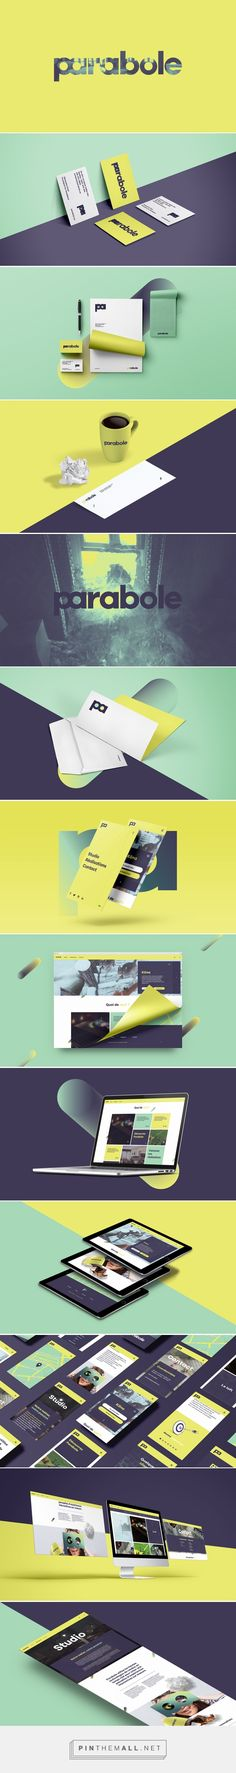 Parabole Branding by 32Mars | Fivestar Branding – Design and Branding Agency & Inspiration Gallery - created via https://pinthemall.net